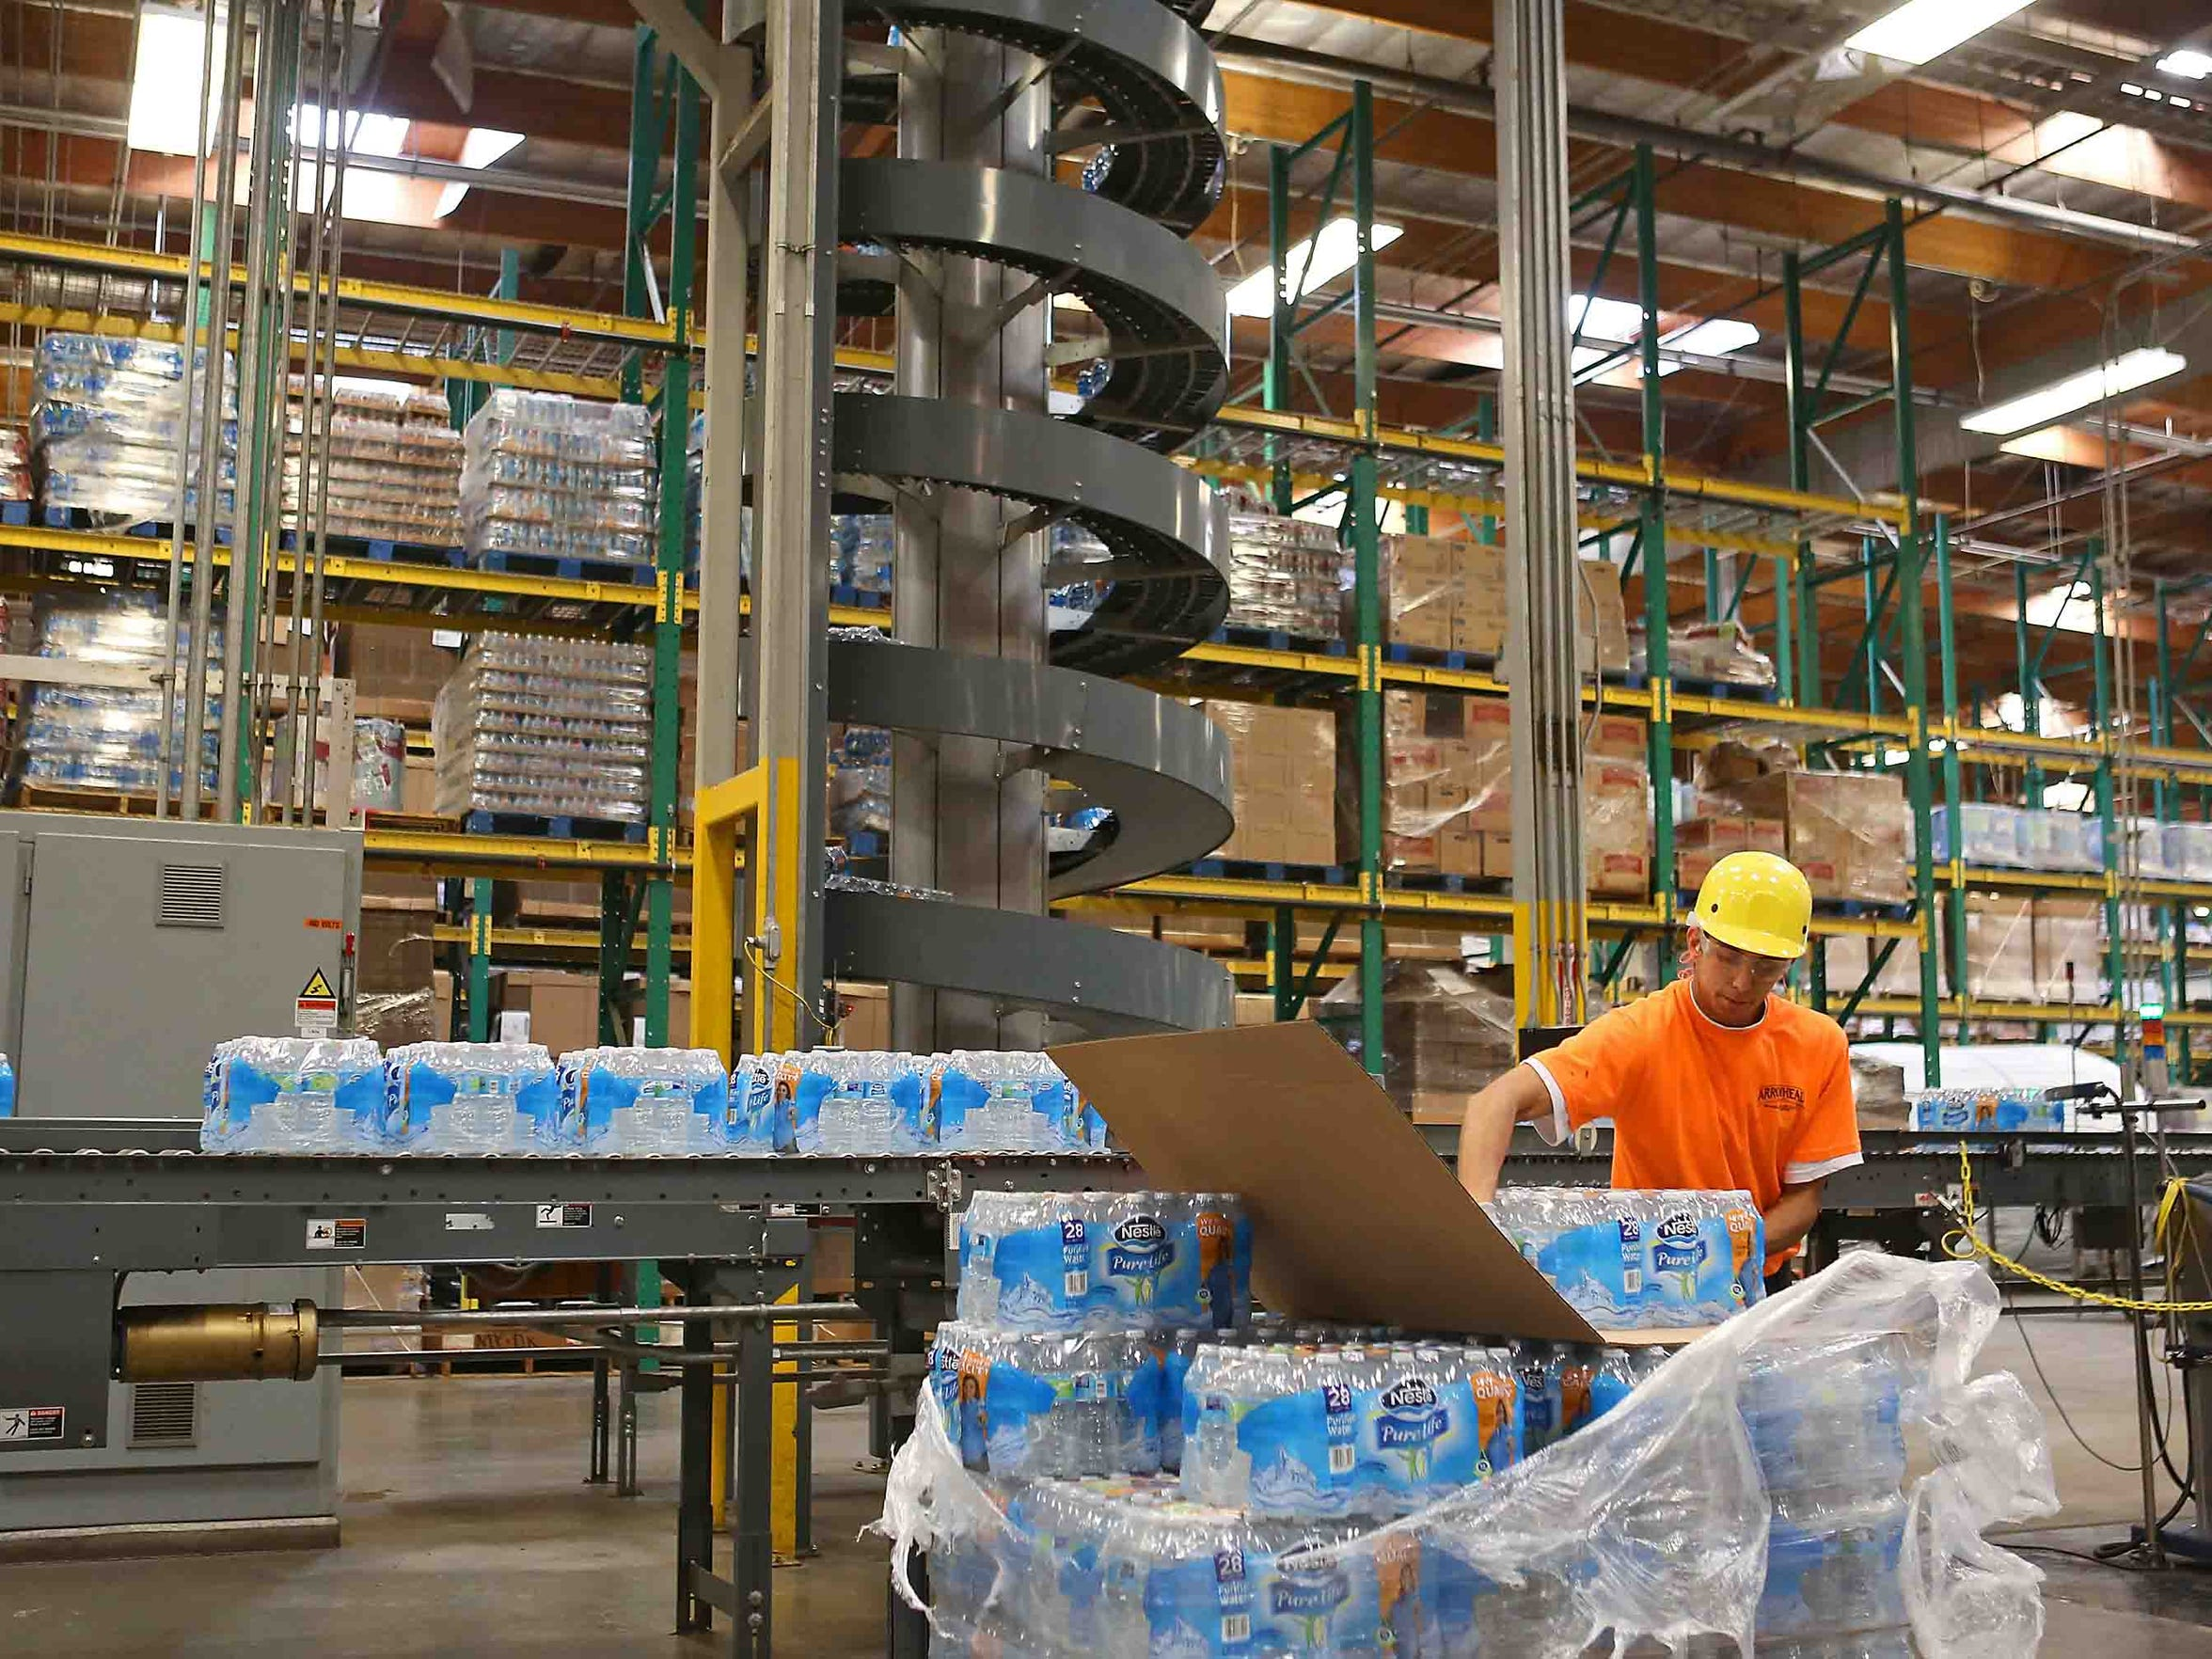 A worker packages bottled water at the Nestle bottling